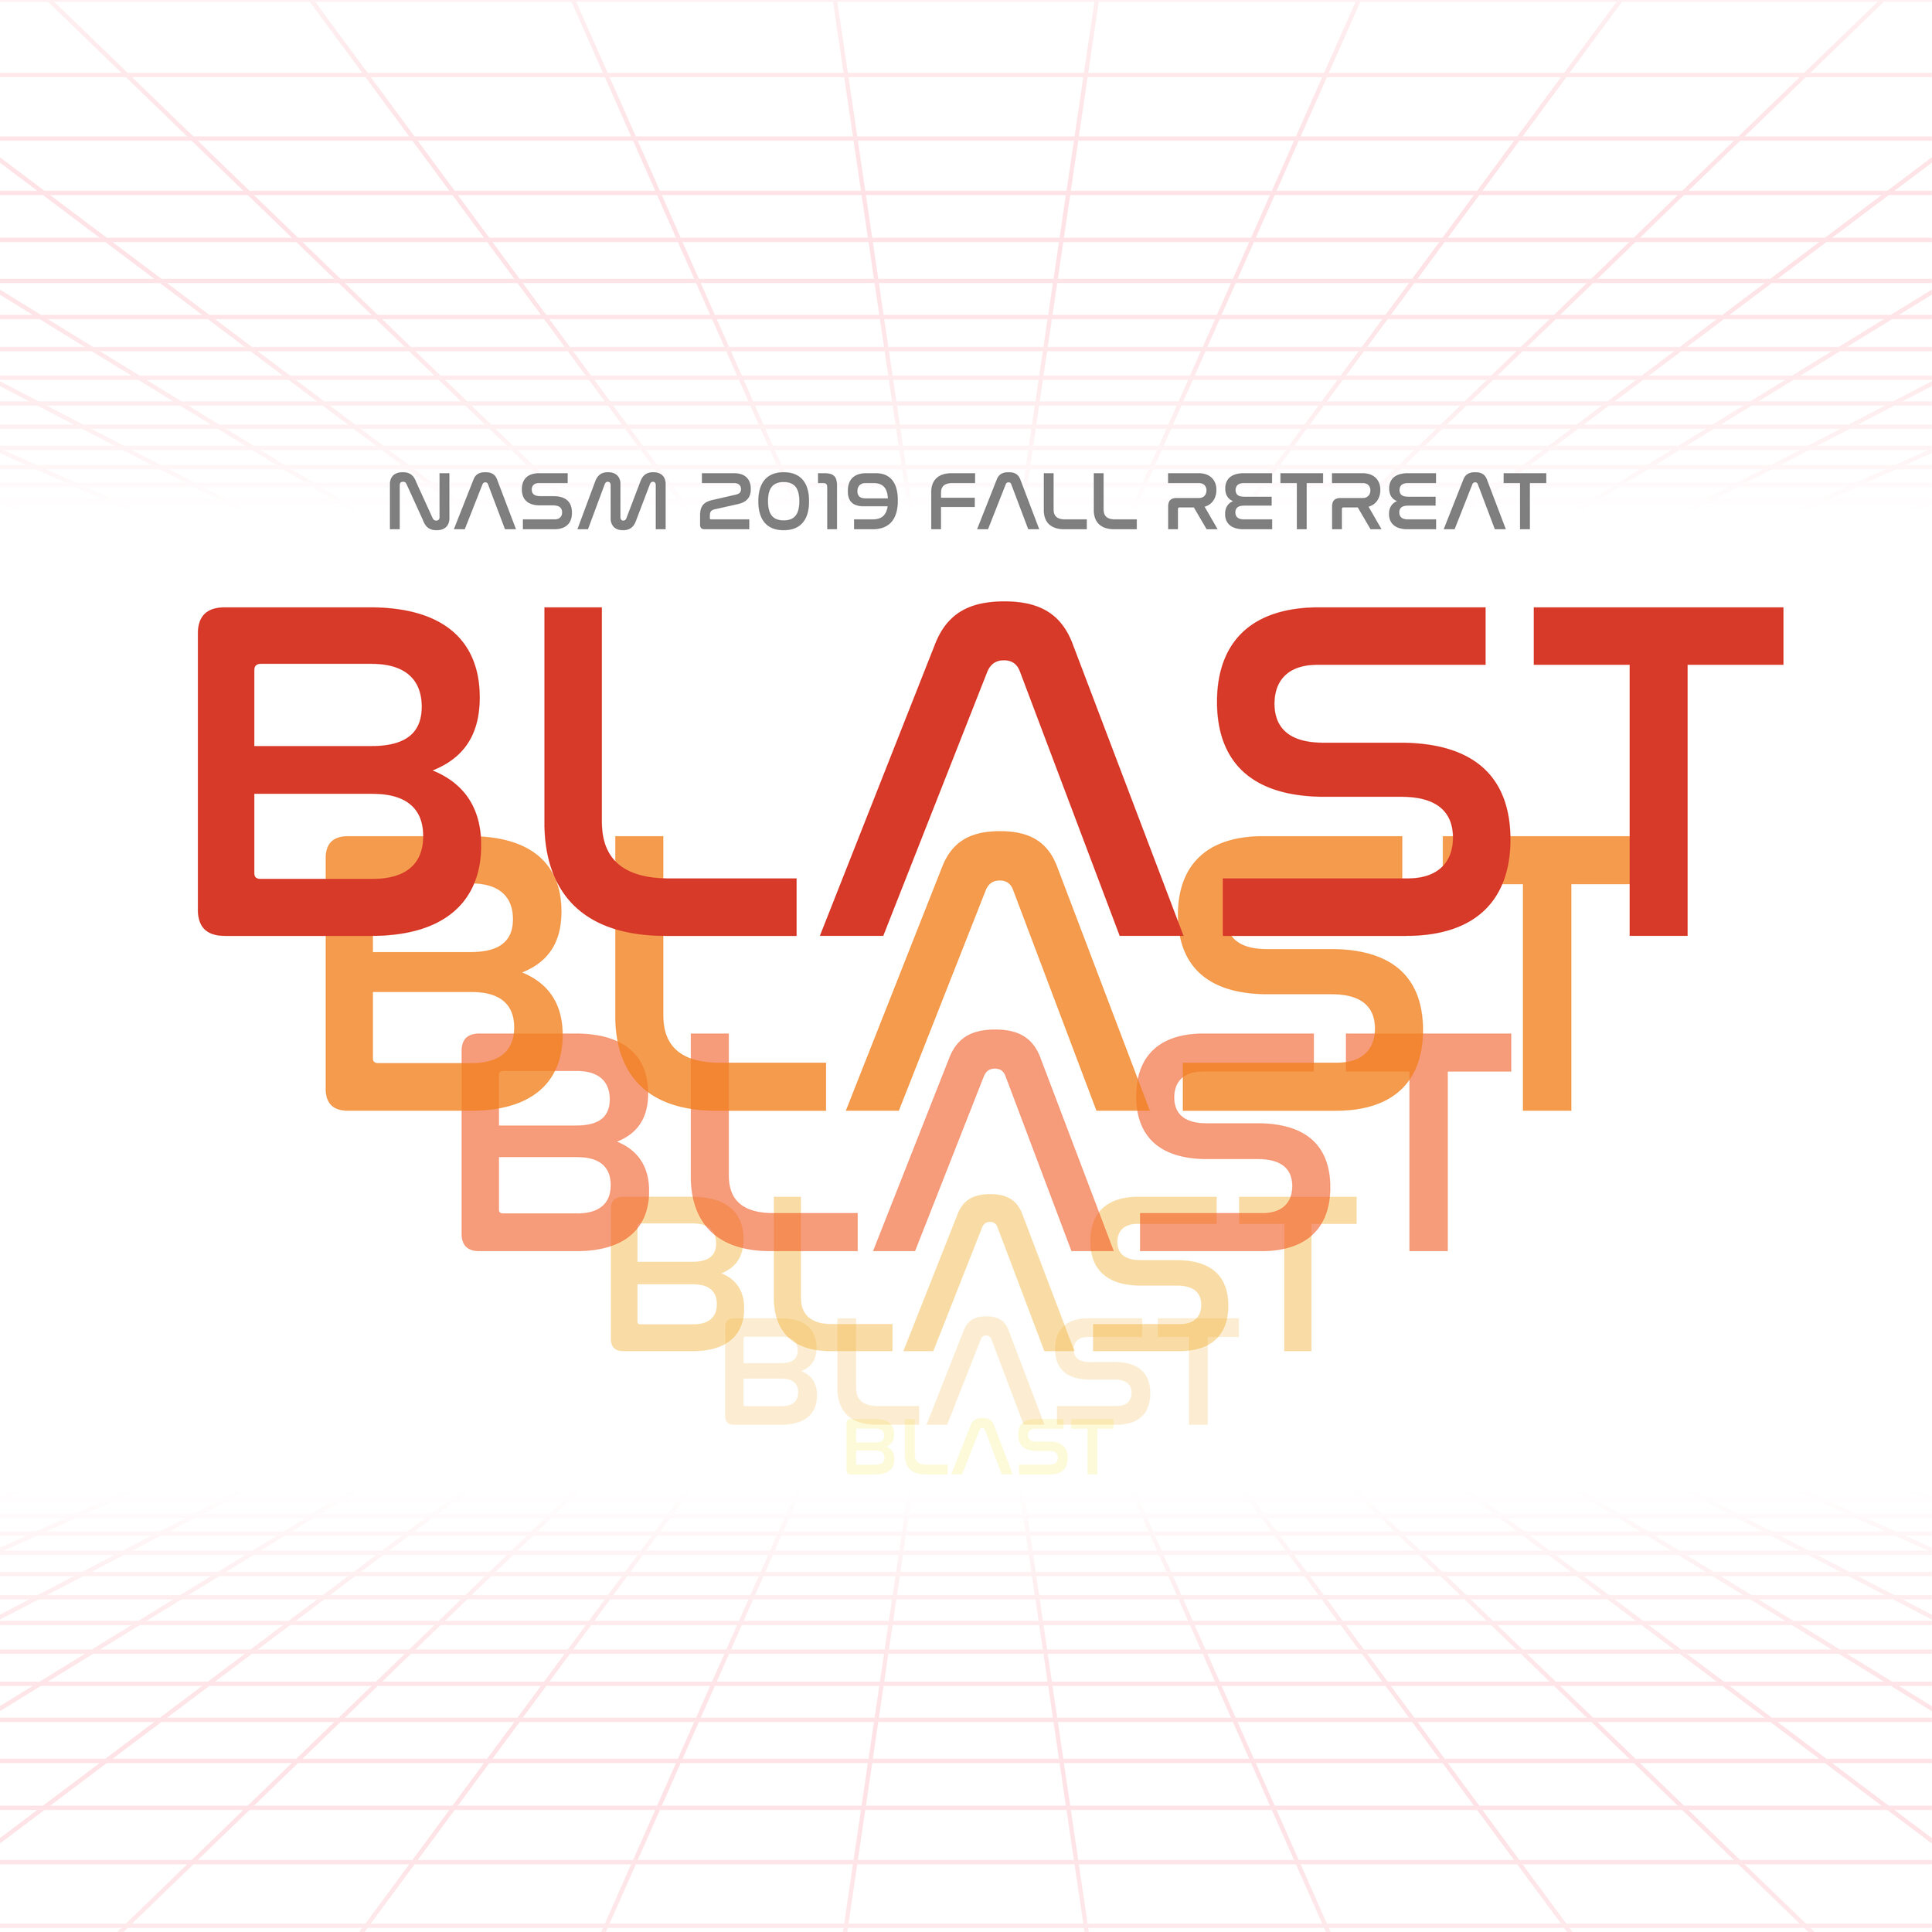 NASM Fall Retreat, November 8-10  We are so excited about returning to the amazing retreat space at  Cohutta Springs  in Crandall, Georgia. This is the one and only retreat that includes all of our students 6th-12th grade. We are excited to get away, to encourage each other, to be inspired by gifted teaching and student led worship, and have a absolute… BLAST . Fall Retreat is a great way to get involved in our Student Ministry and is a perfect event to bring a first time guest with you. We highly encourage all of our students to bring a friend to this special retreat. The NASM staff and past summer interns are thrilled to spend quality time with students and to walk alongside them during this retreat.   The cost is $100 for NASM students  (scholarships are available to offset cost)     And only $10 to bring a Friend. This is an unbelievable opportunity to invite a friend that needs to be blessed by this retreat and NASM.   So, if you want to have a  BLAST  sign up you and a friend today!